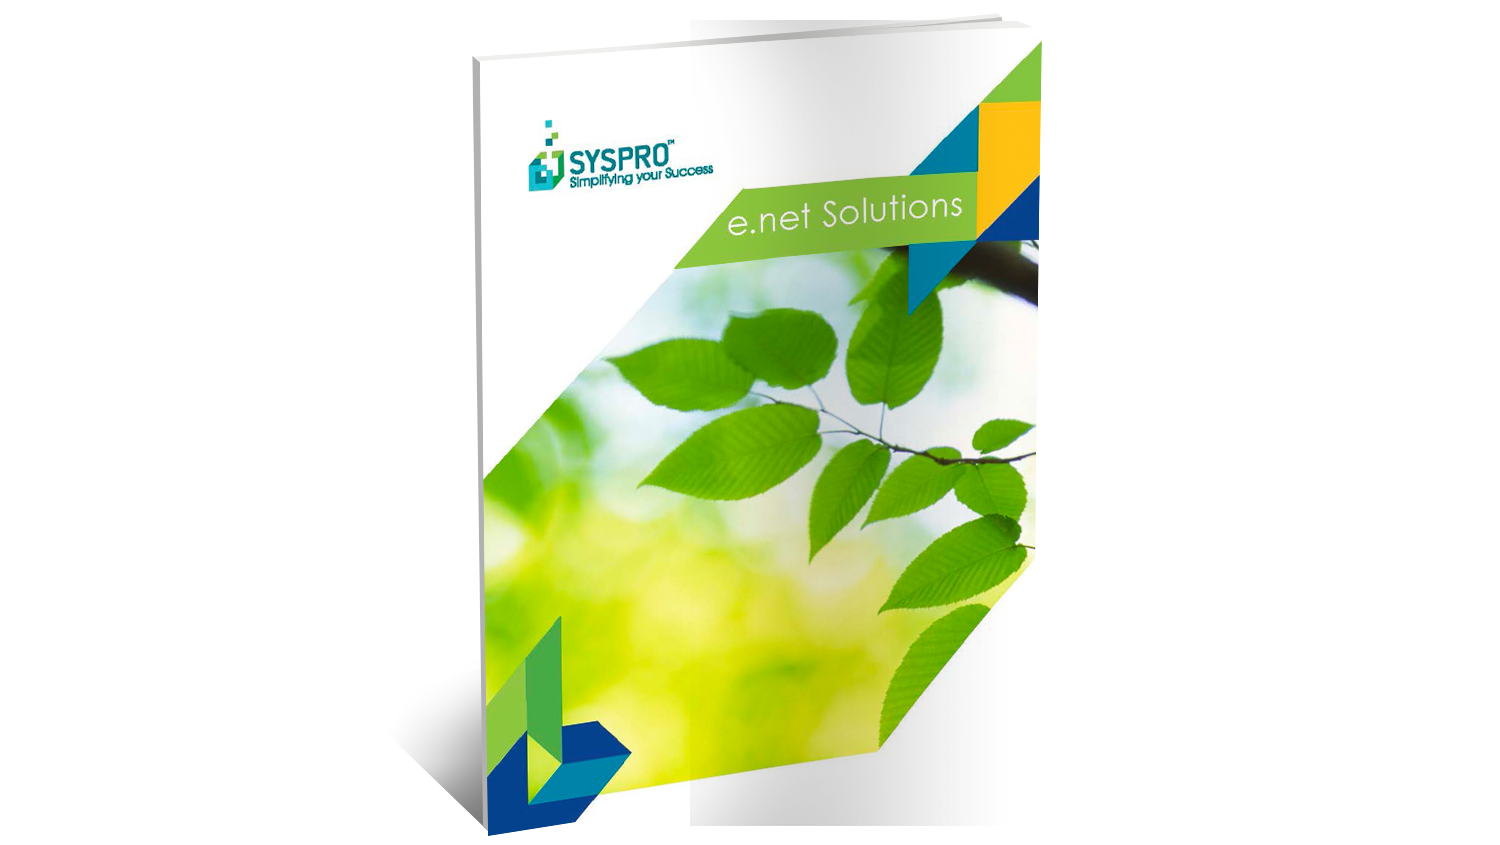 SYSPRO e.net Solutions Brochure